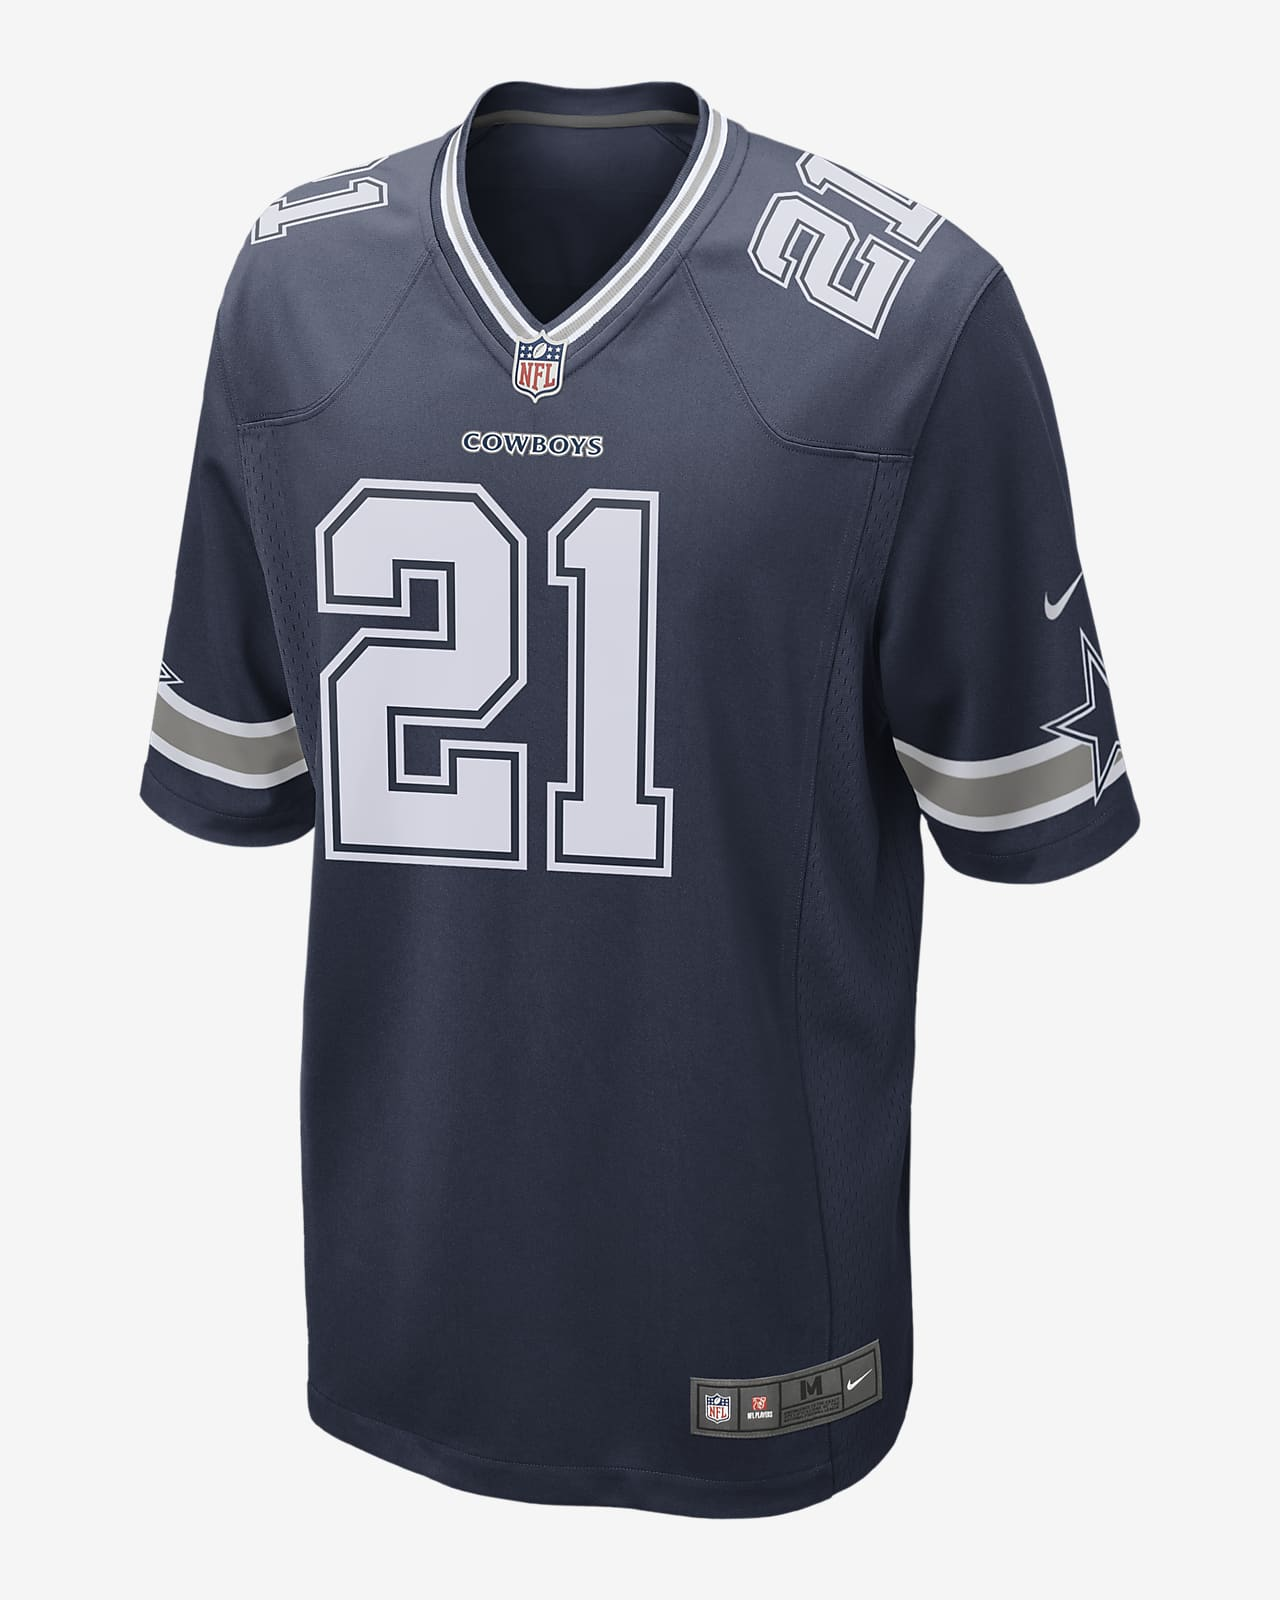 NFL Dallas Cowboys (Ezekiel Elliott) Men's Game Football Jersey